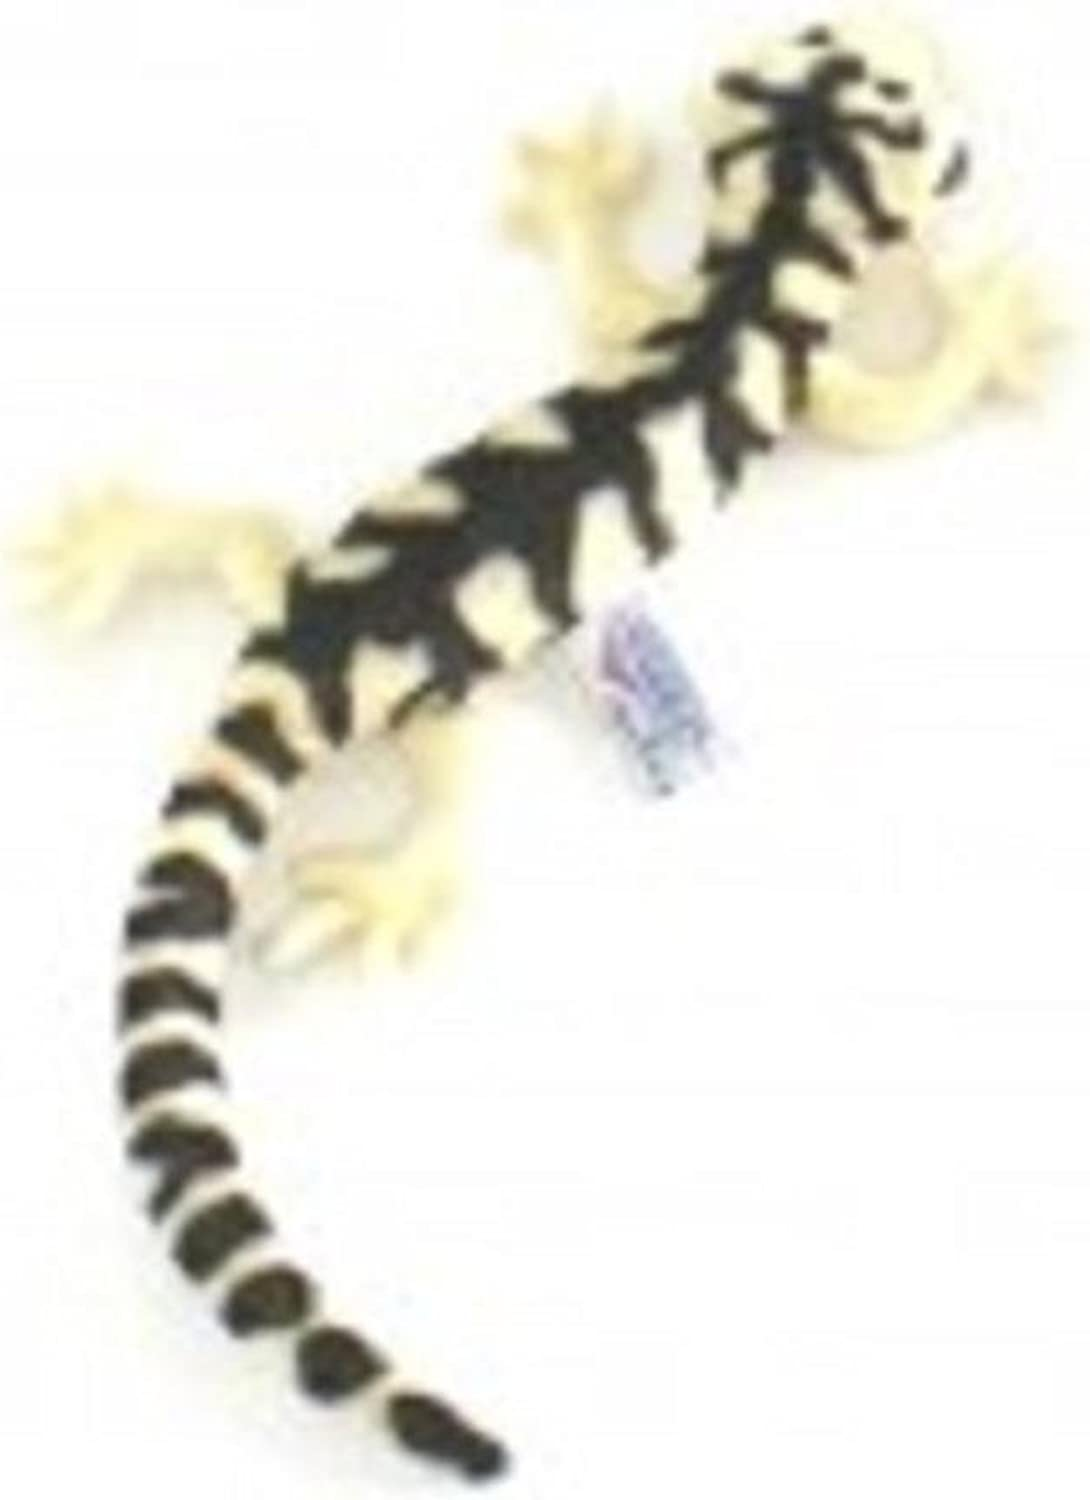 Set of 4 LifeLike LifeLike LifeLike Handcrafted Extra Soft Plush Bulldog Salamander Stuffed Animals 14.75  093b17